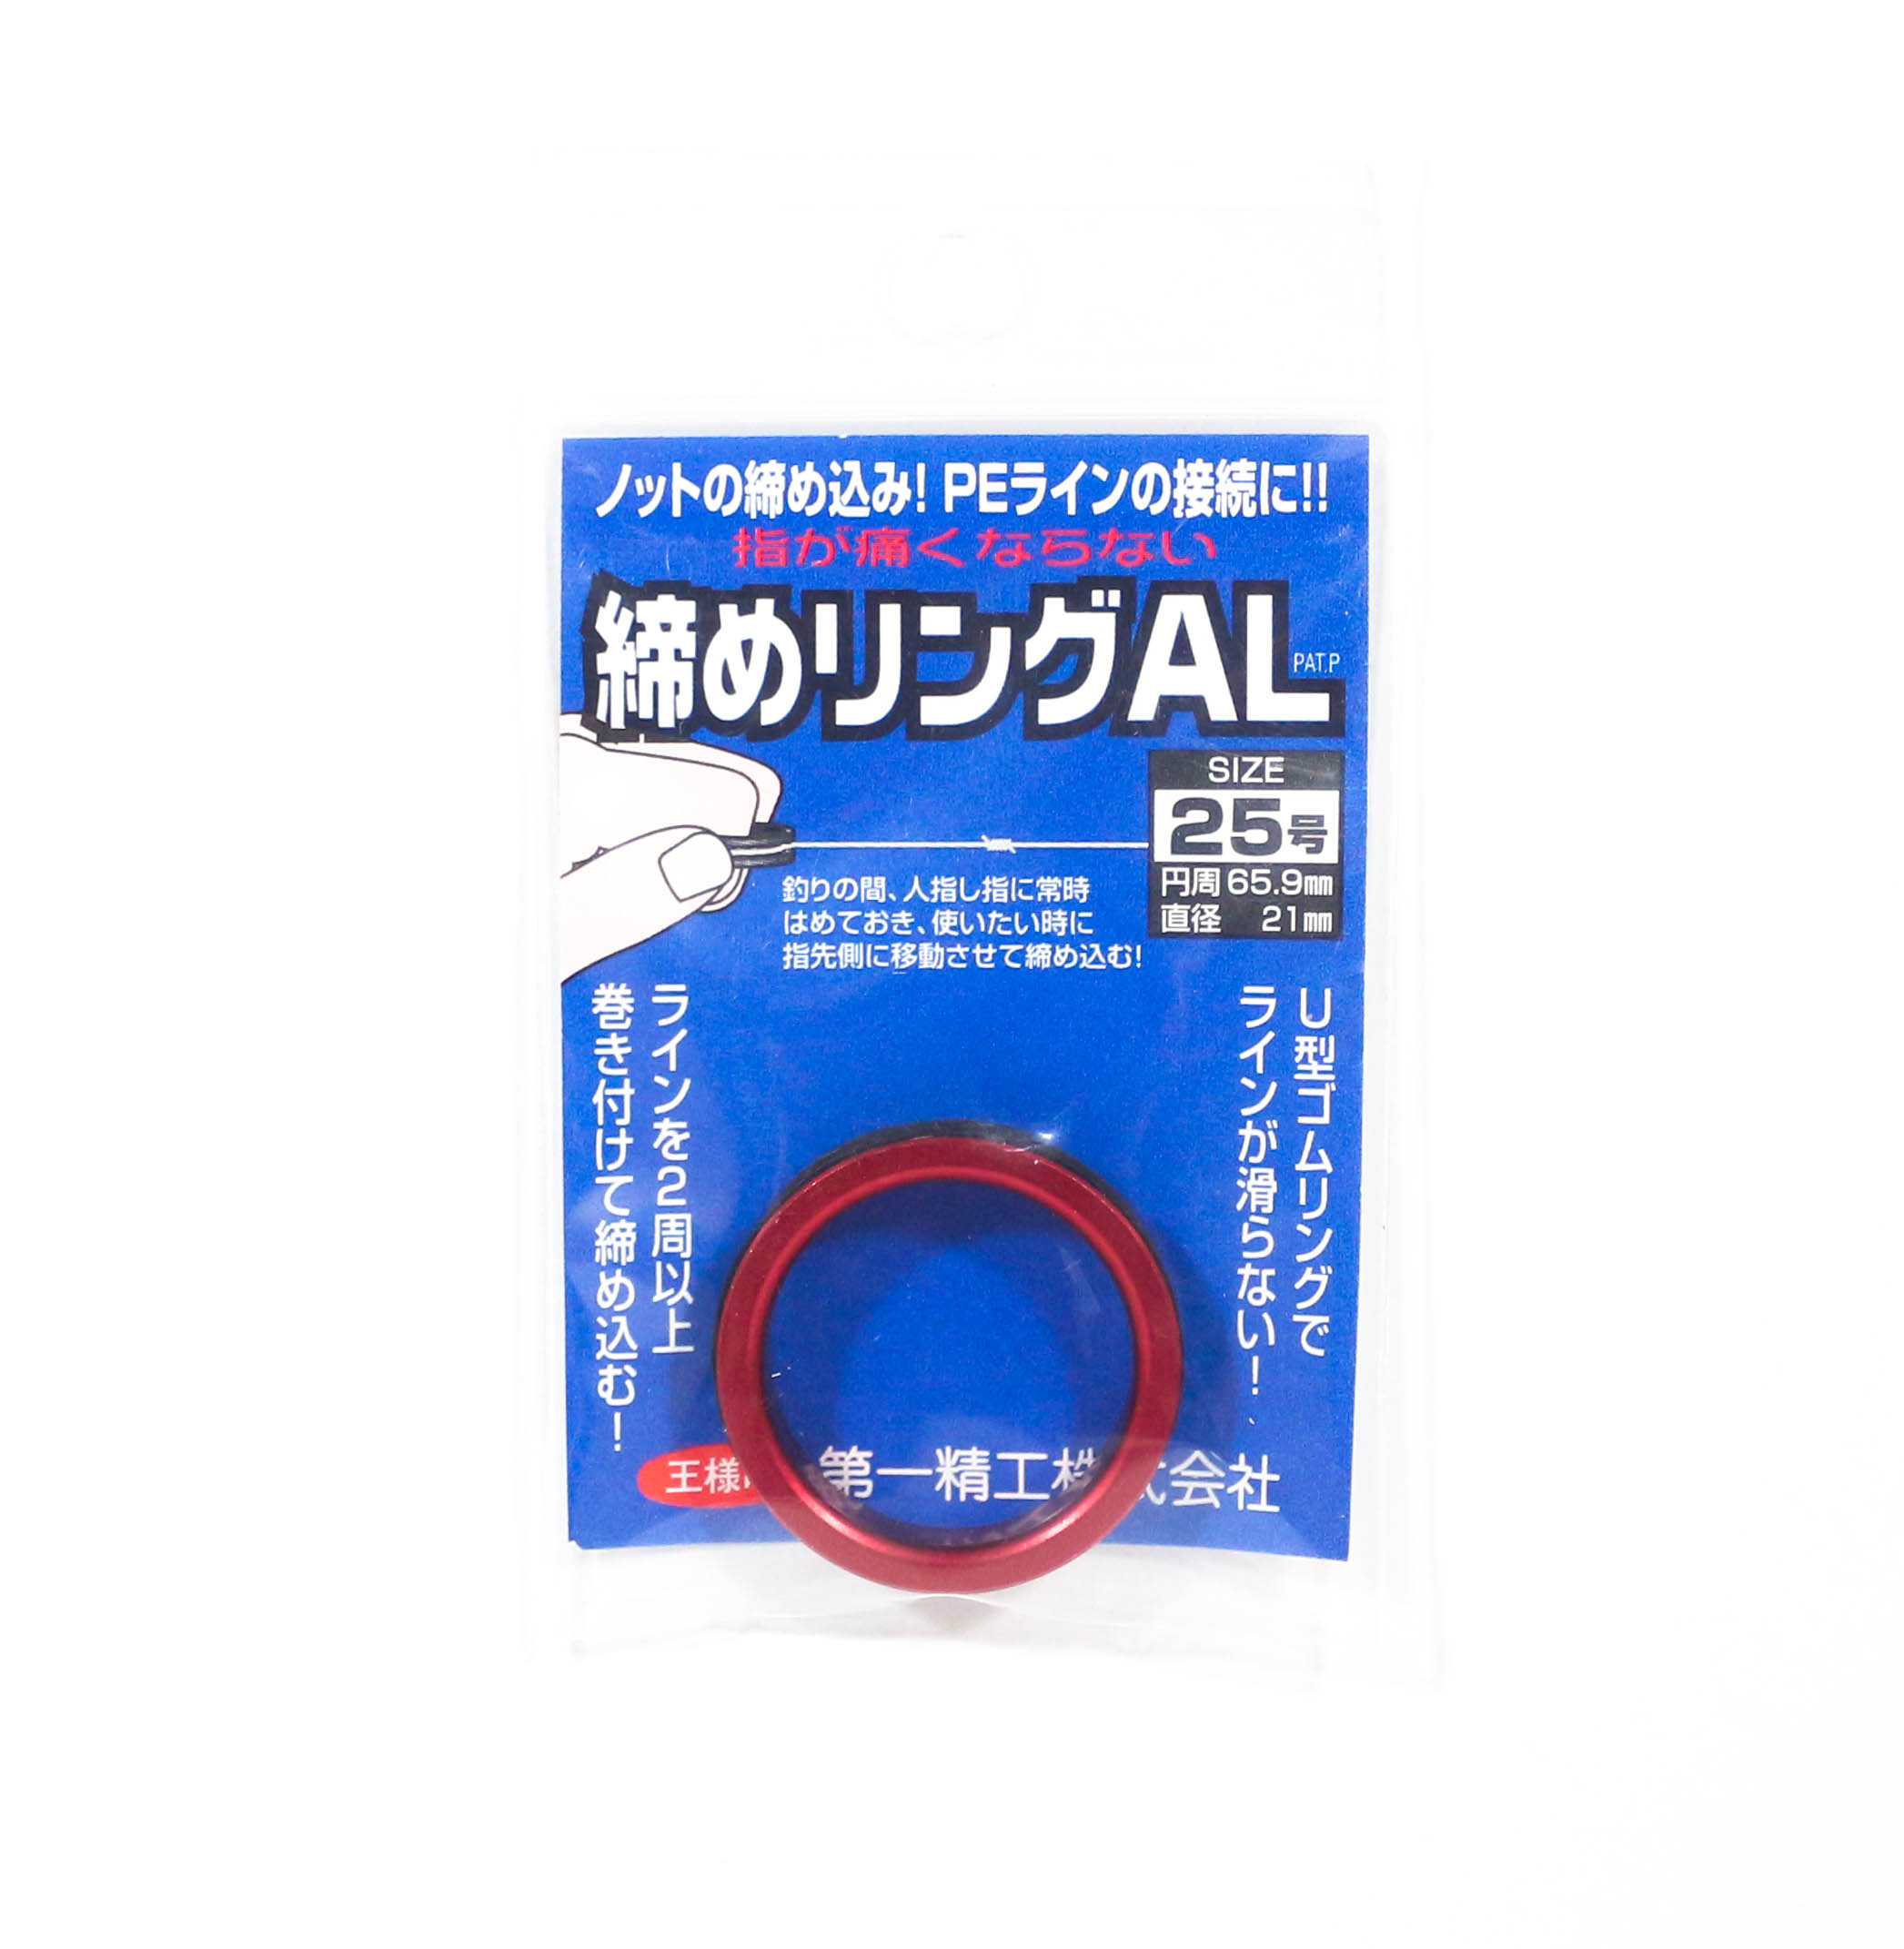 Daiichi #33292 AL 25 Knot Tightener Rubber Grip Ring 65.9mm Red (2925)